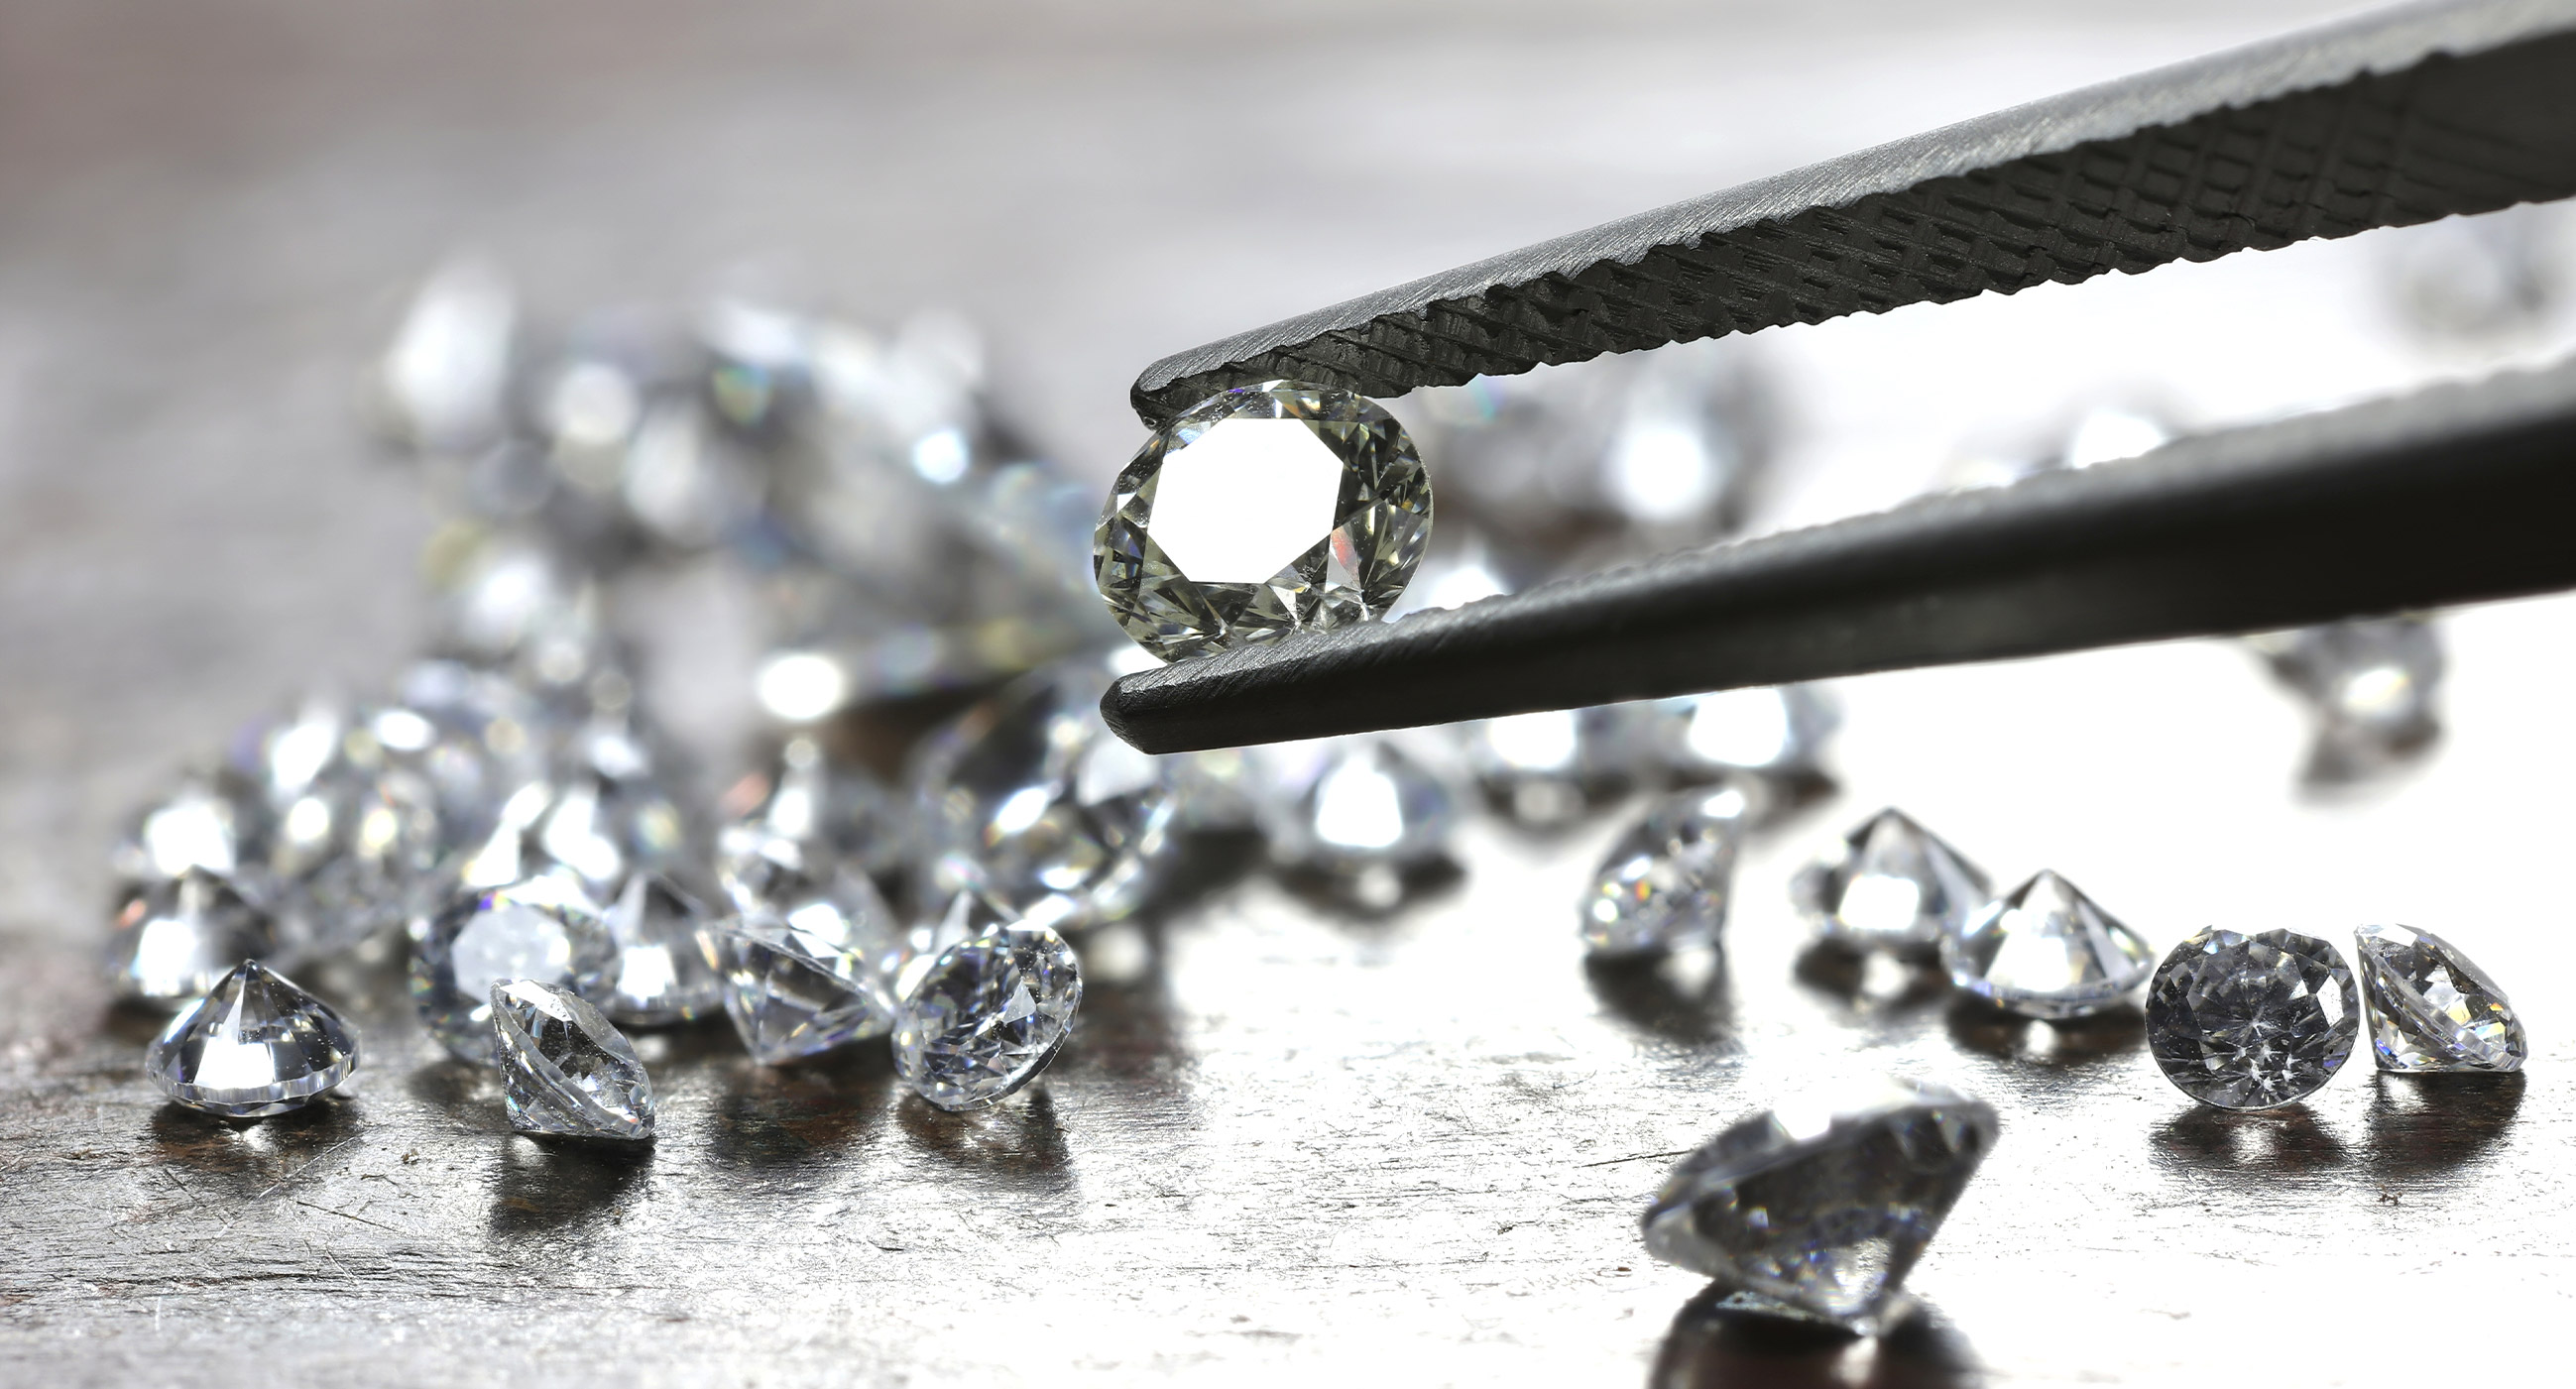 diamond cleaning - what to clean diamond with